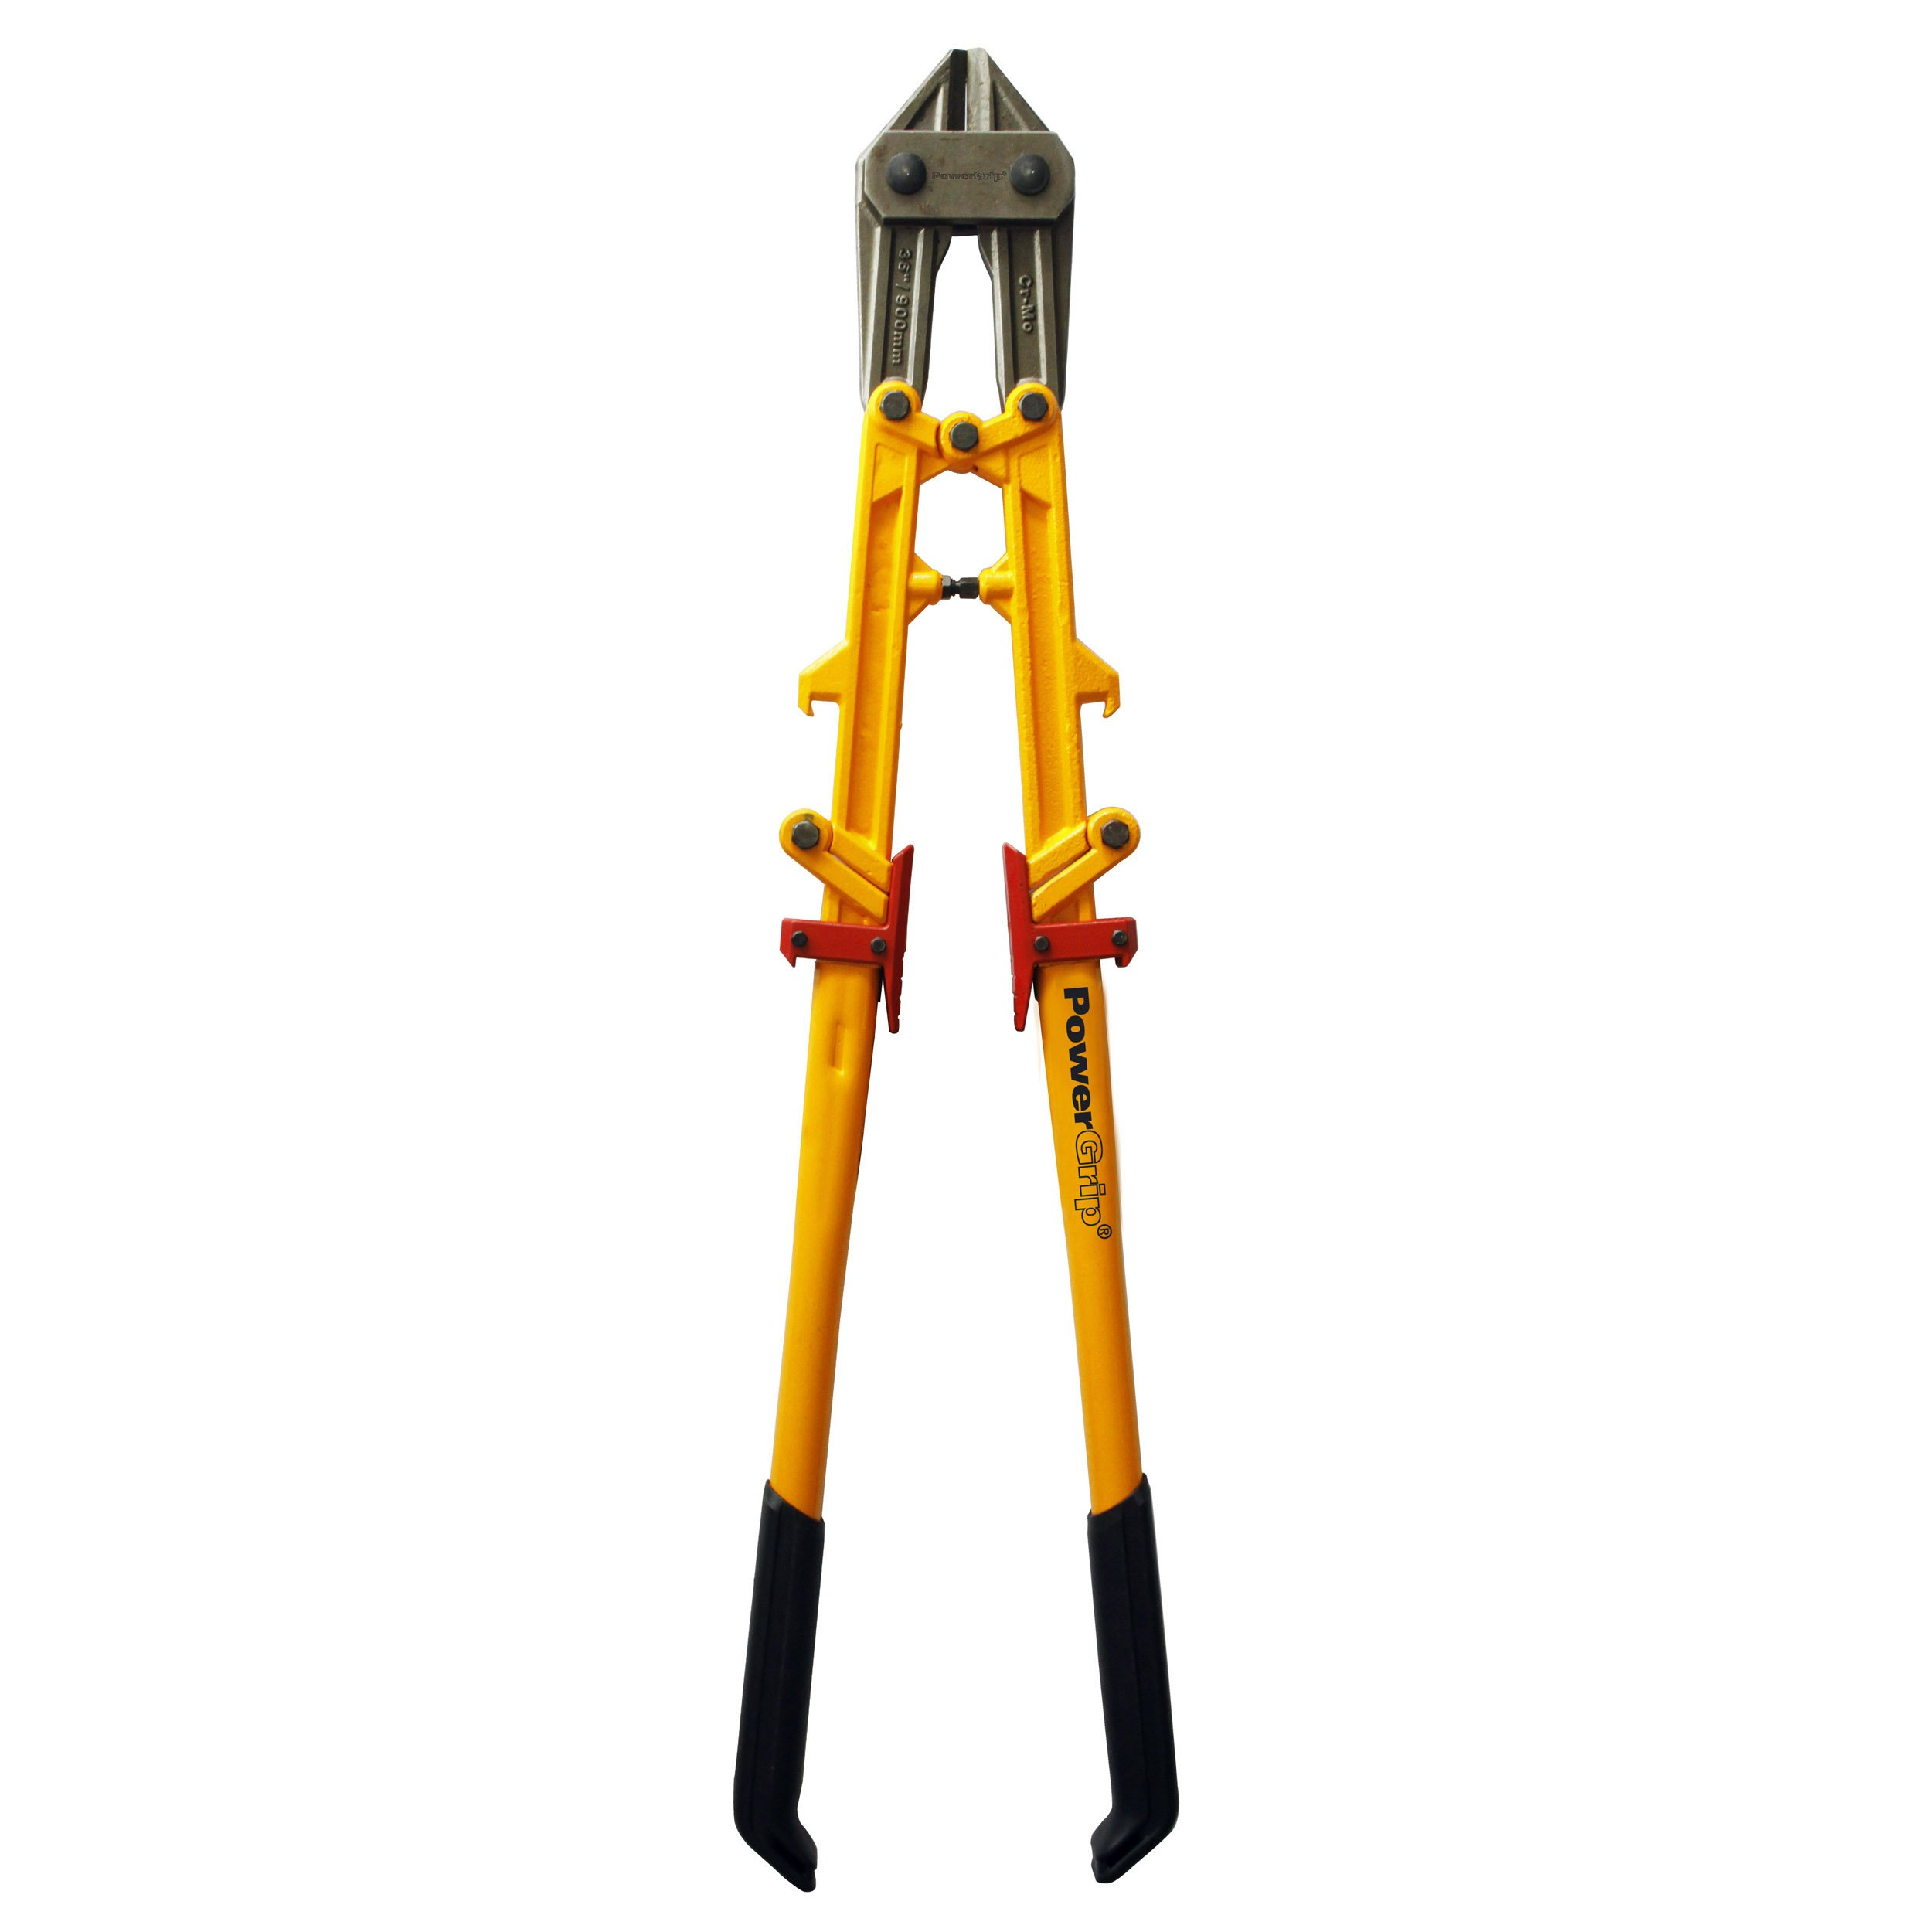 Olympia Tools 39-136 Power Grip Bolt Cutter, 36-Inch by Olympia Tools